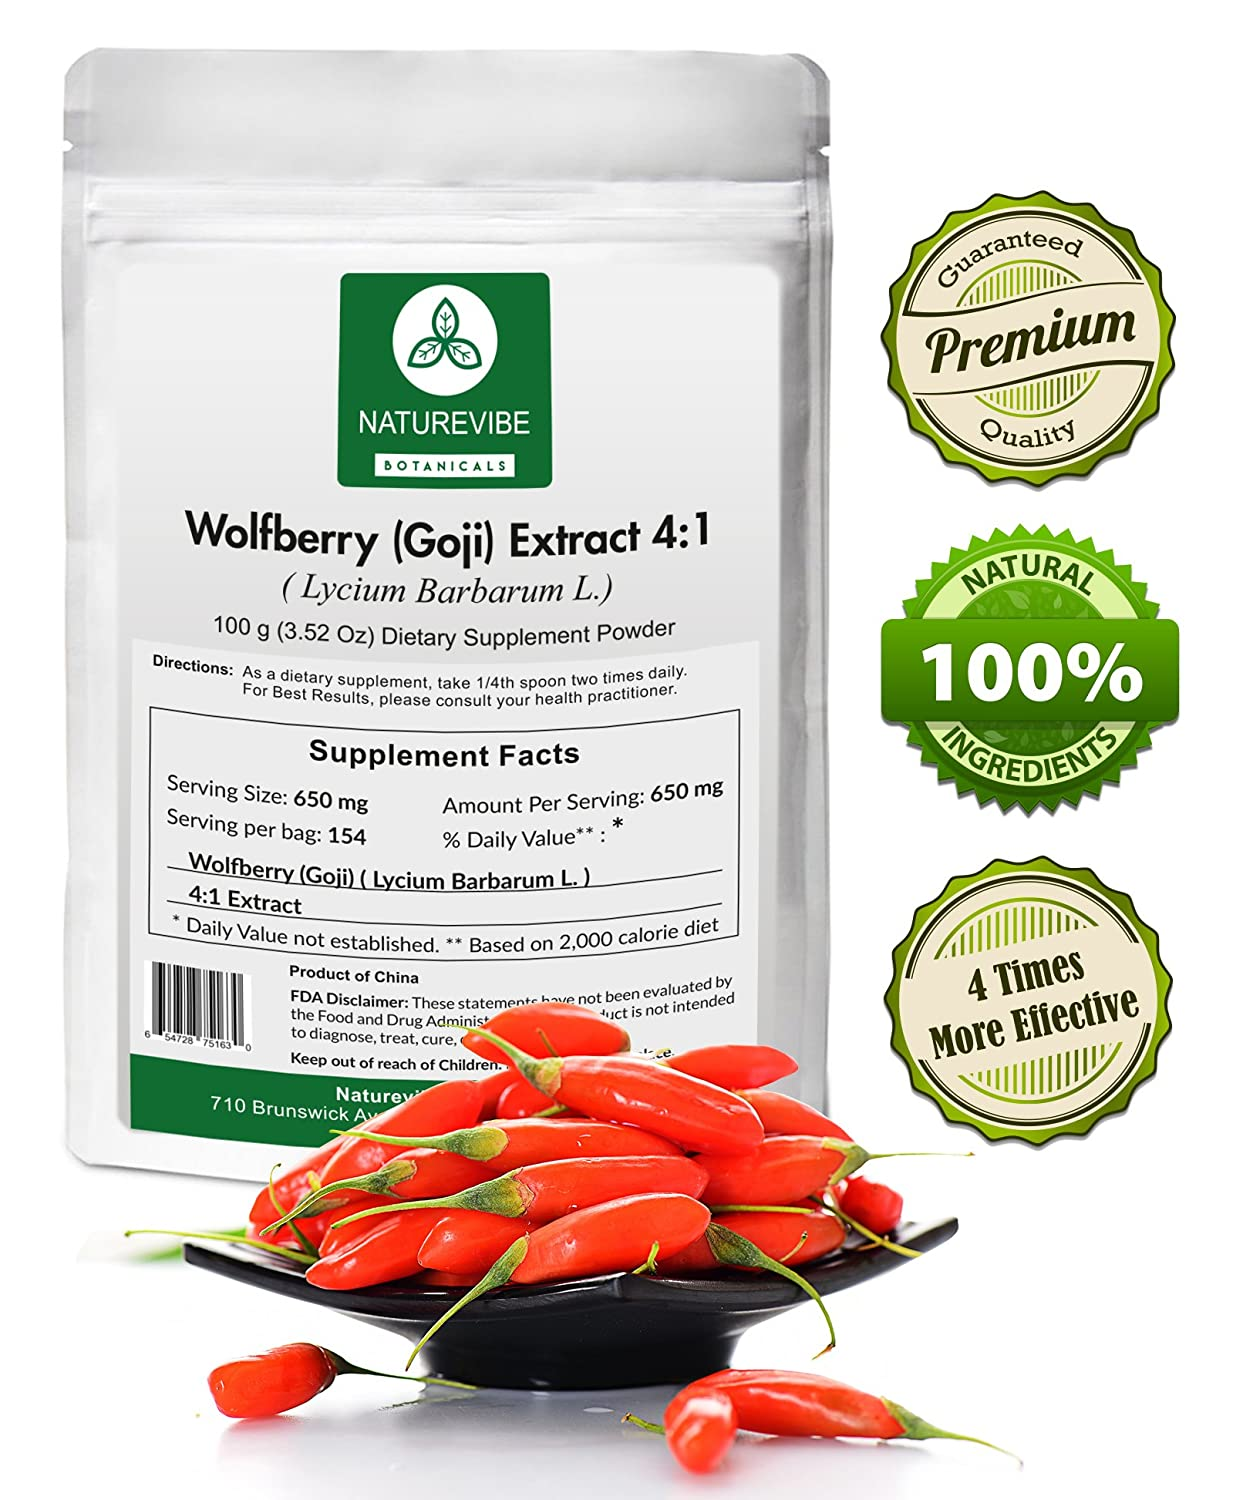 Amazon.com: Naturevibe Botanicals Wolfberry (Goji) Extract Powder 4:1 (100 grams) - 4 x more effective - Boosts Immunity - Supports Vision: Health ...